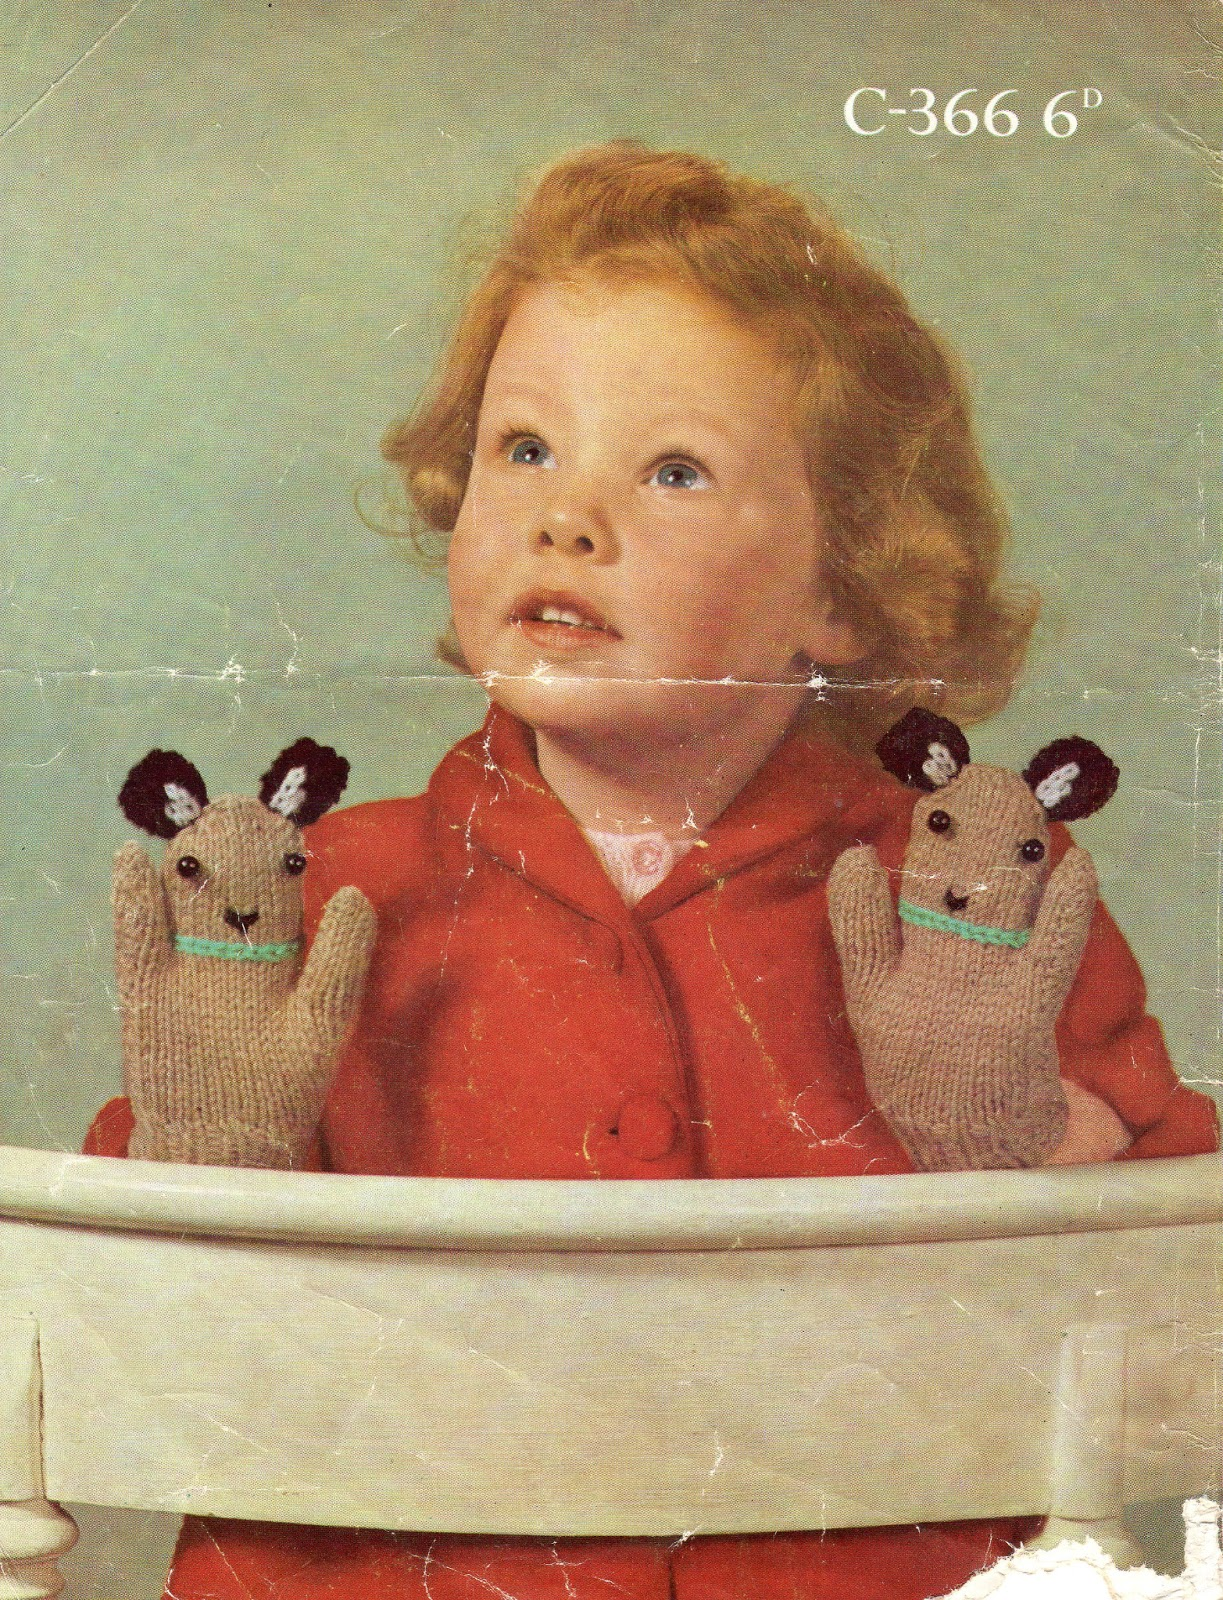 Knitting Pattern For Puppet Mittens : Marilla Walker: Puppet mittens - vintage knitting pattern!